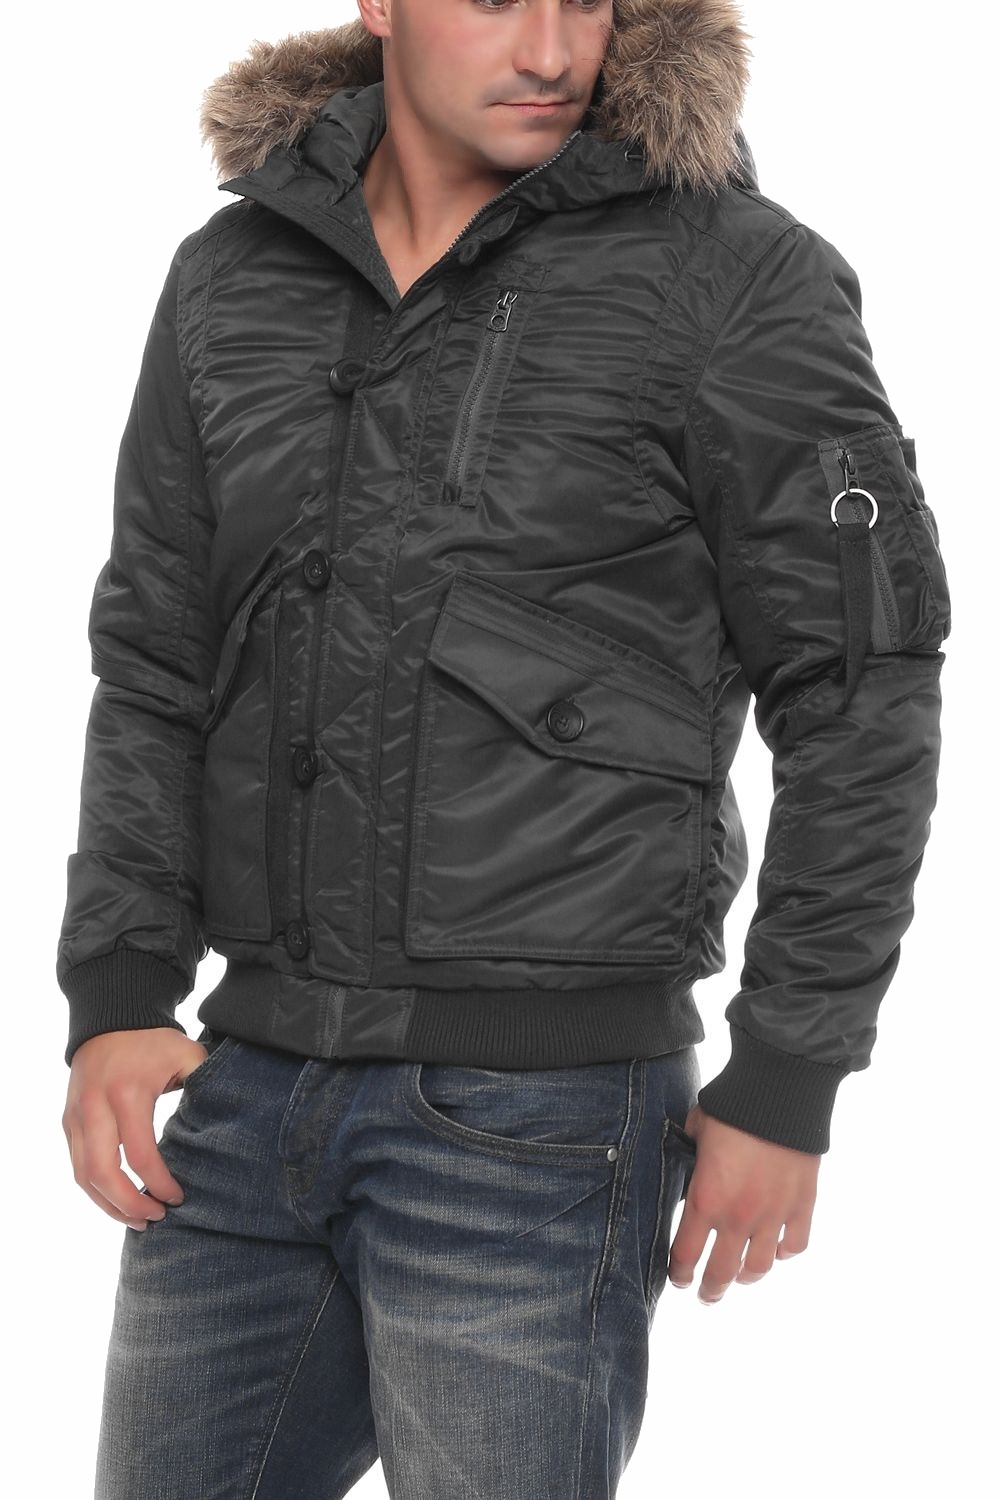 jack jones herren jacke jor force bomber jacket jkt winterjacke ebay. Black Bedroom Furniture Sets. Home Design Ideas